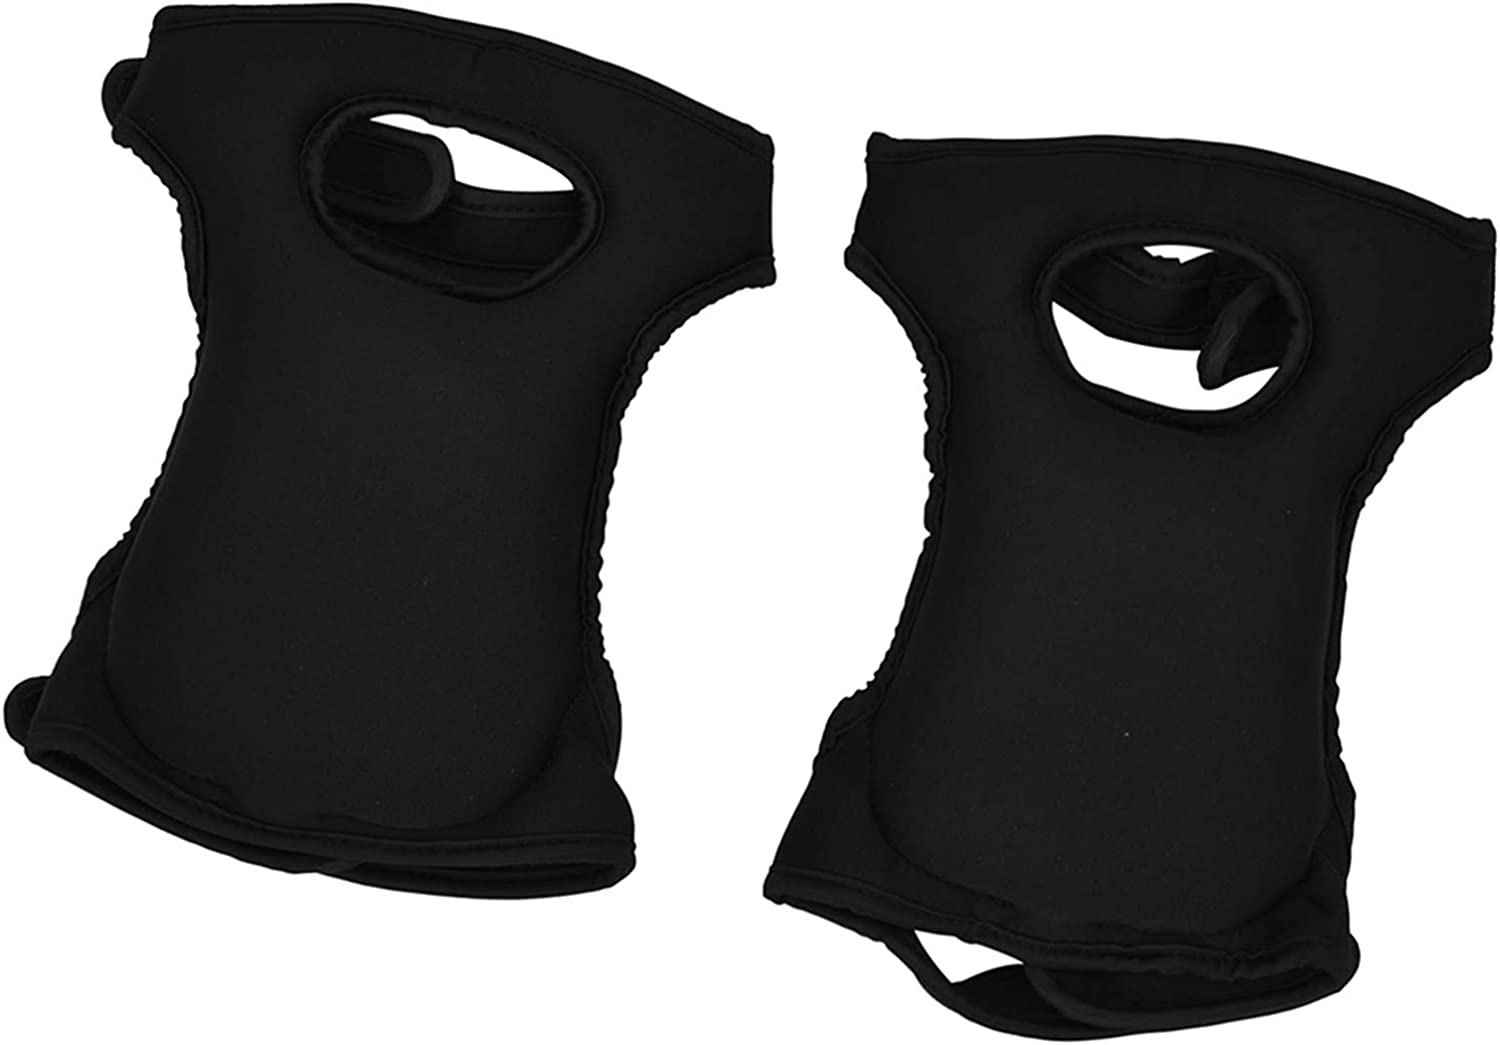 nwejron Knee Pads for Gardening Conform Ranking TOP17 Hu Use to Convenient Challenge the lowest price of Japan ☆